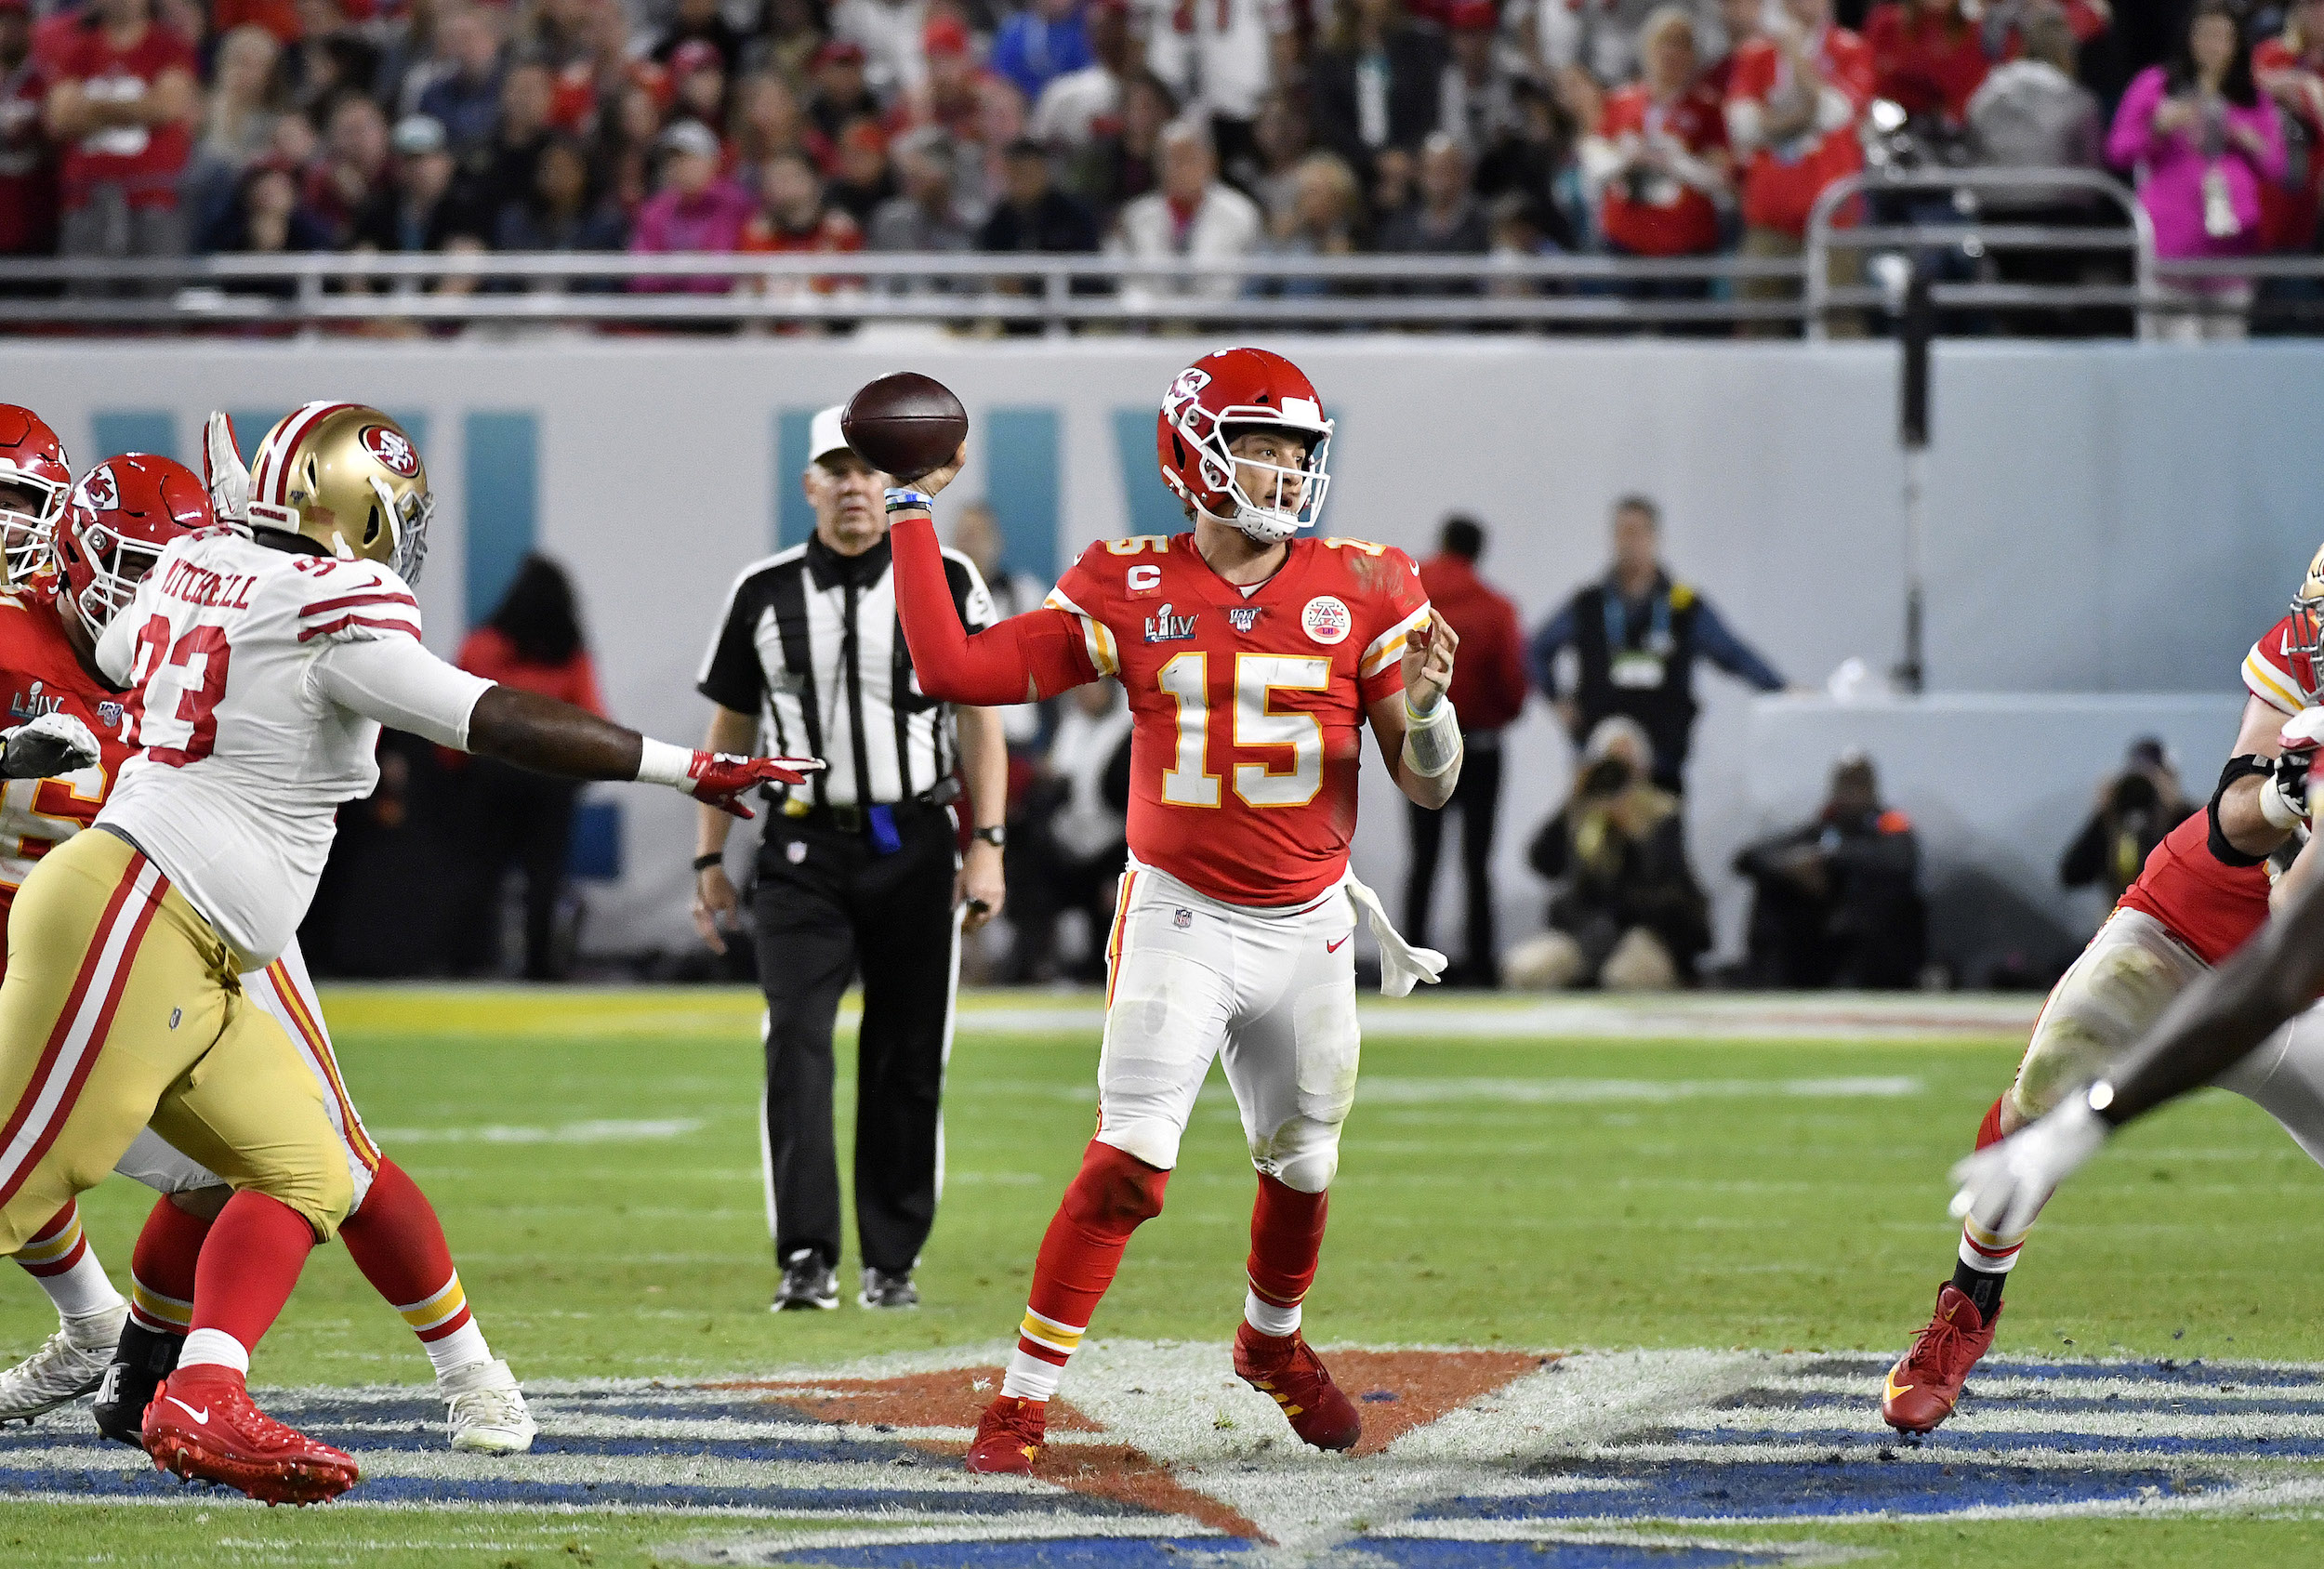 Kansas City Chiefs quarterback Patrick Mahomes has worn number 15 since he entered the NFL.